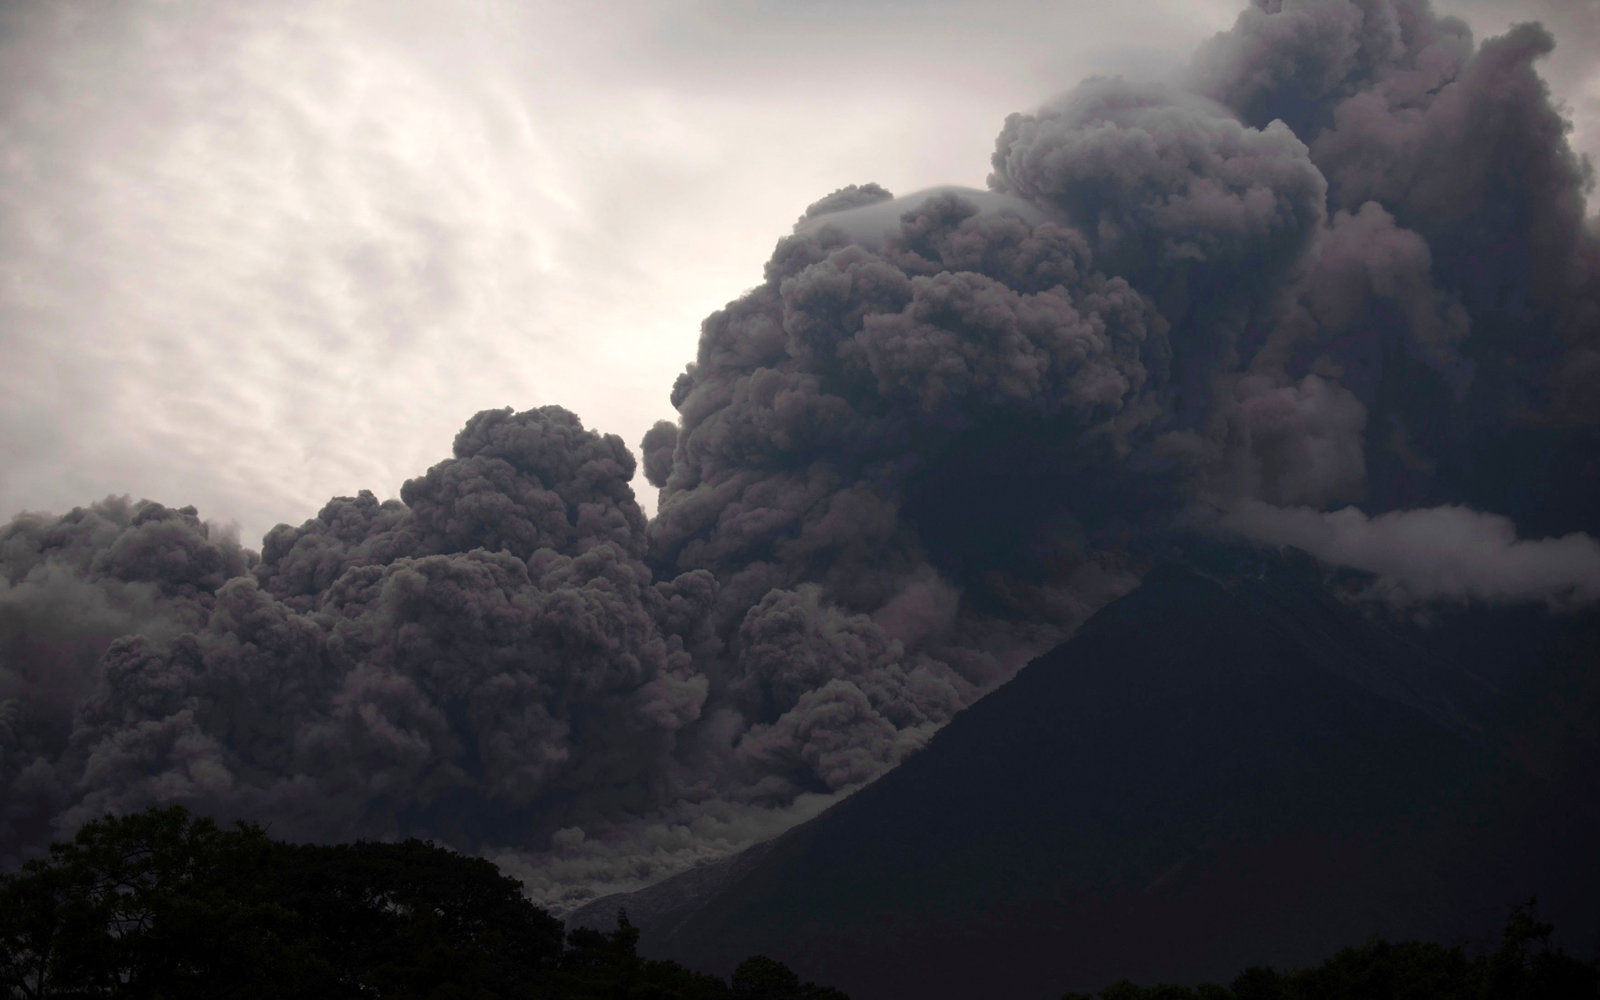 Guatemala S Volcanic Eruption Was Its Deadliest In Over A